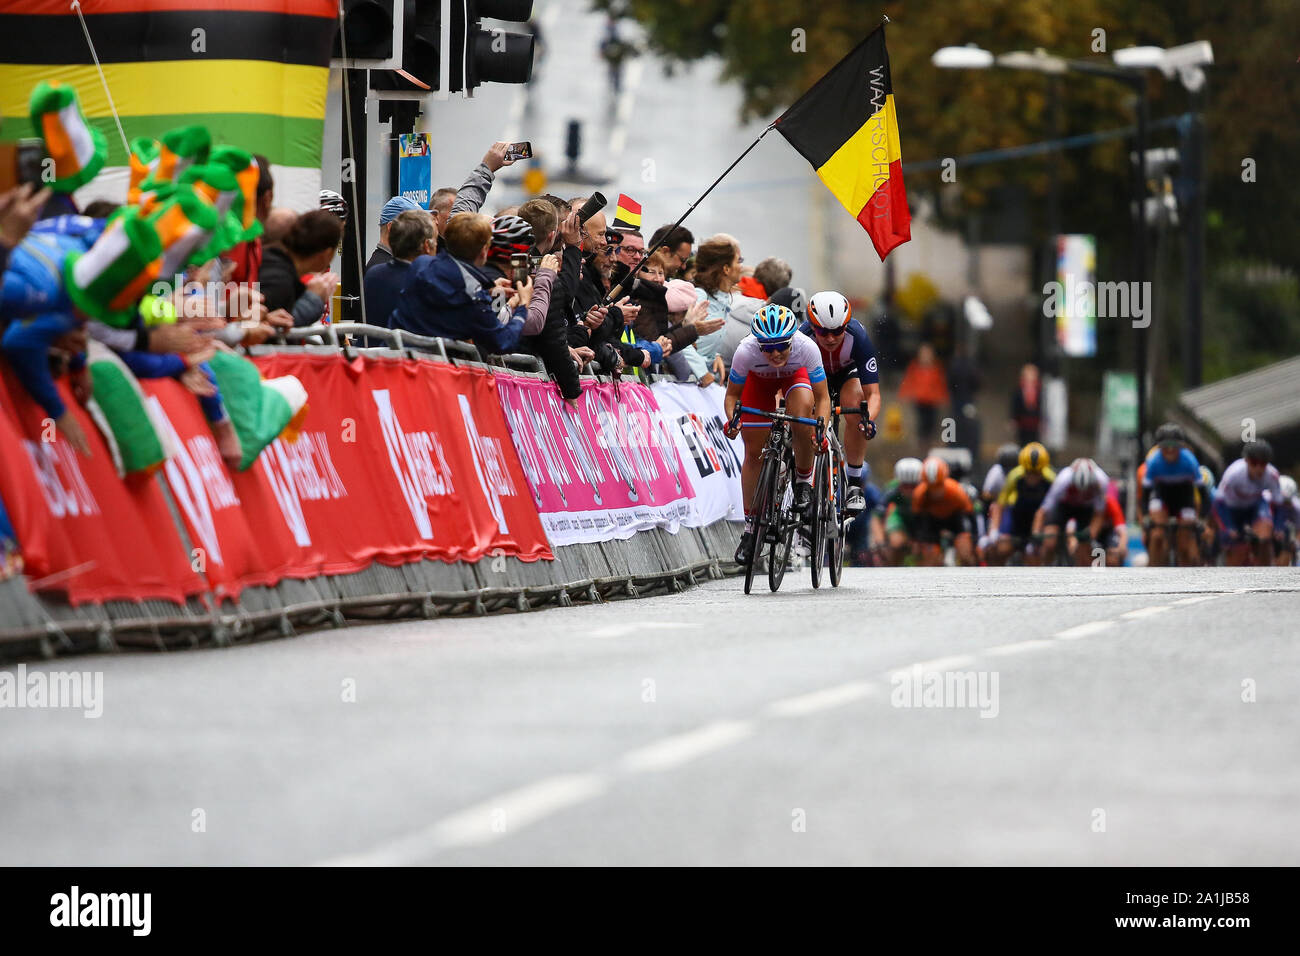 Harrogate, UK. 27th September 2019. Aigul Gareeva  of Russia and Megan Jastrab  of the USA hold off the chasing peloton going into the finish straight at the 2019 UCI Road World Championships Womens Junior Road Race. September 27, 2019 Credit Dan-Cooke/Alamy Live News Stock Photo